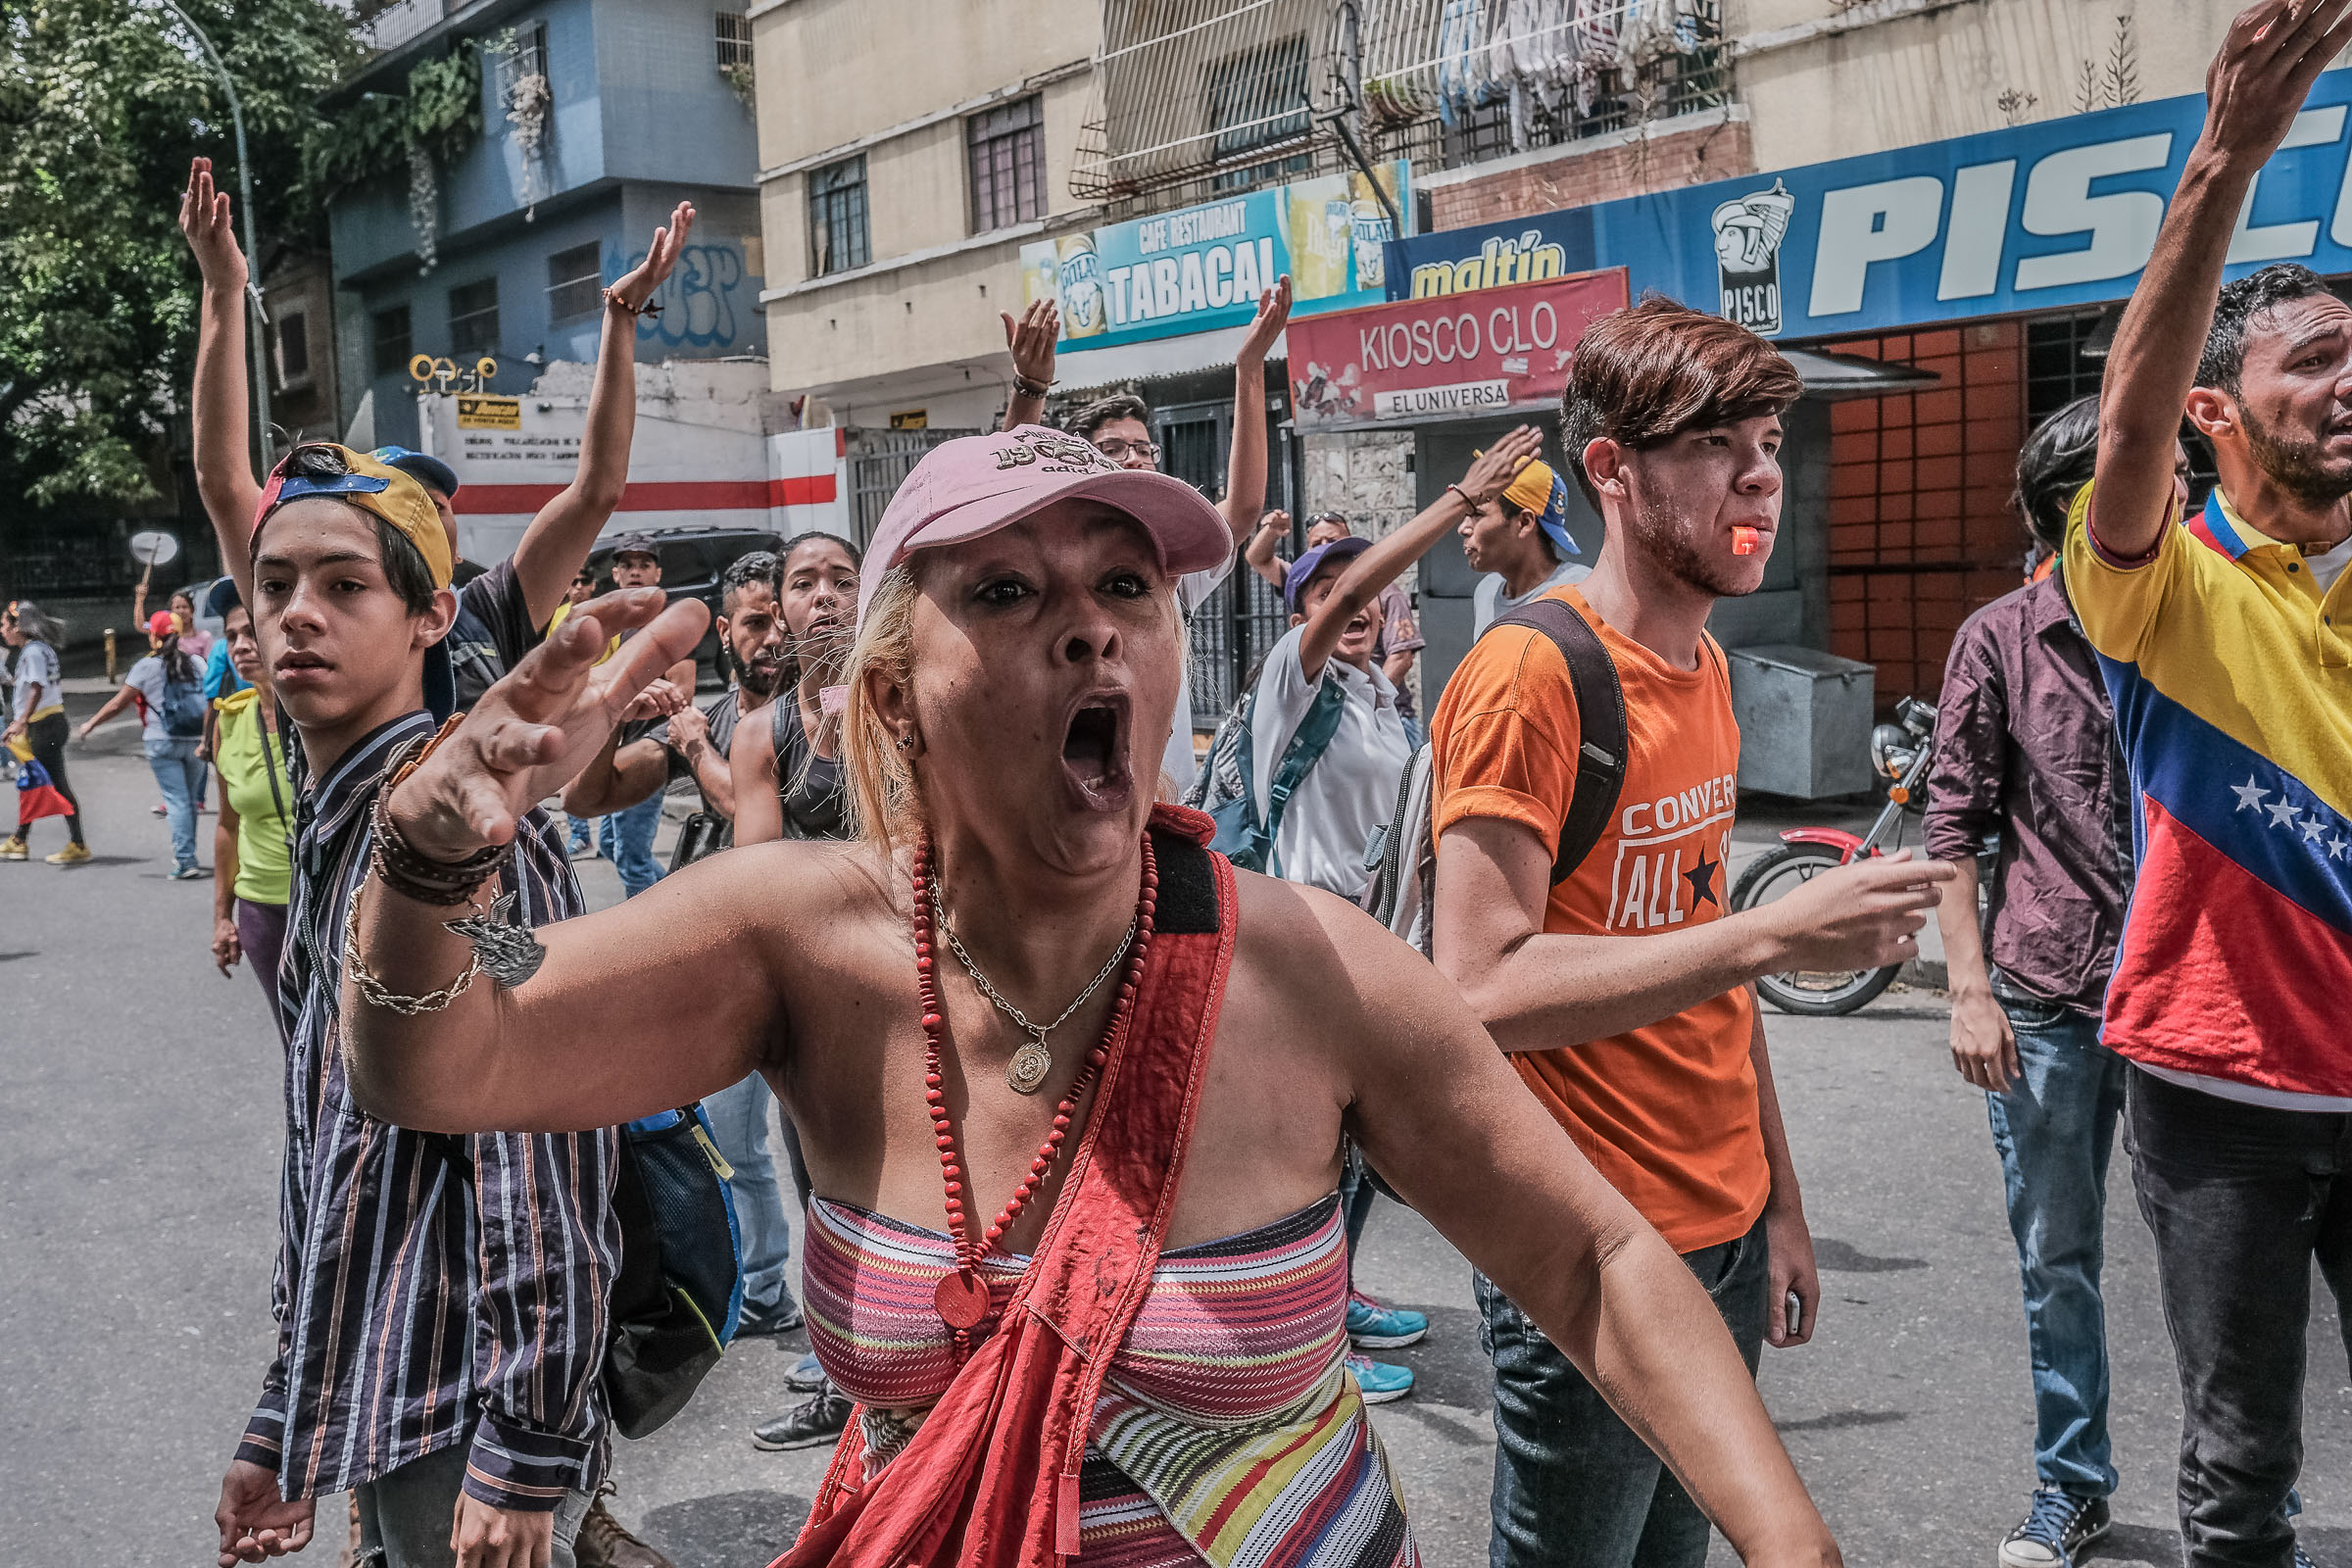 April 19, 2017 Caracas, Venezuela (Photo by Joris van Gennip/GroundTruth)